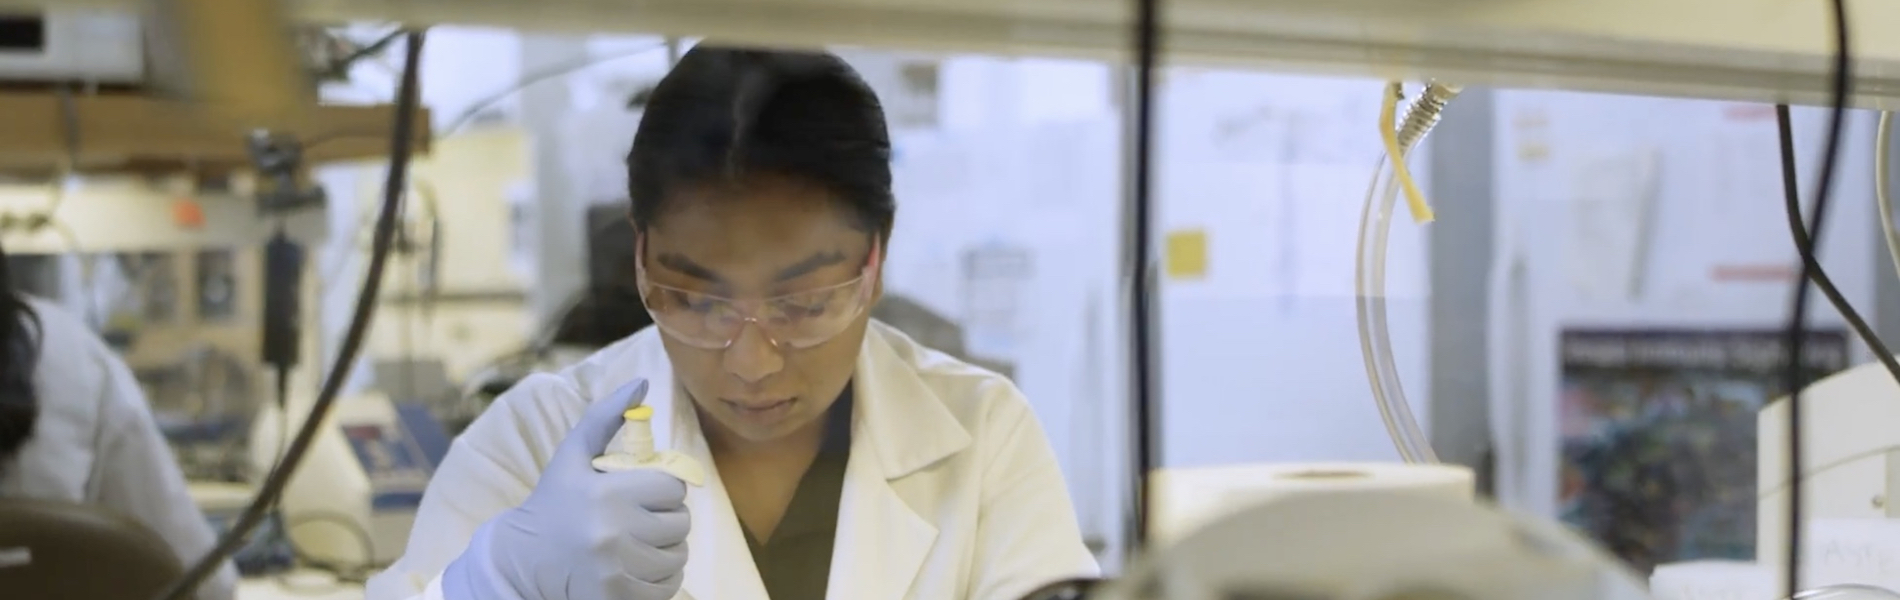 female researchers pipetting in a lab